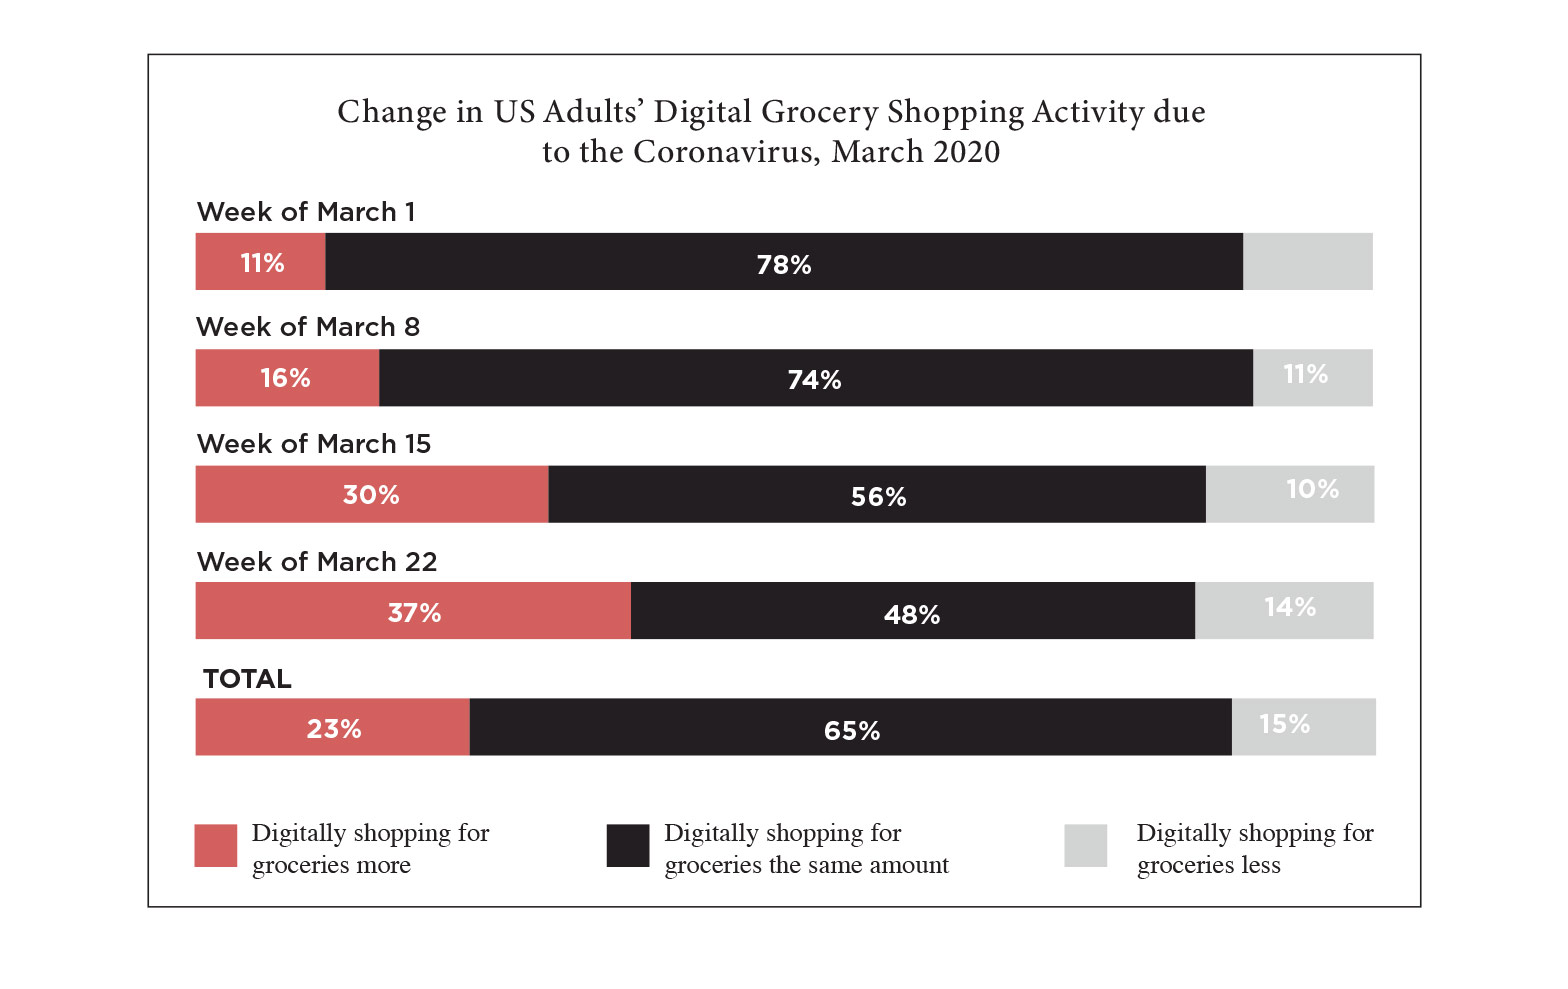 Chart showing change in US adults' digital grocery shopping activity due to the coronavirus, March 2020